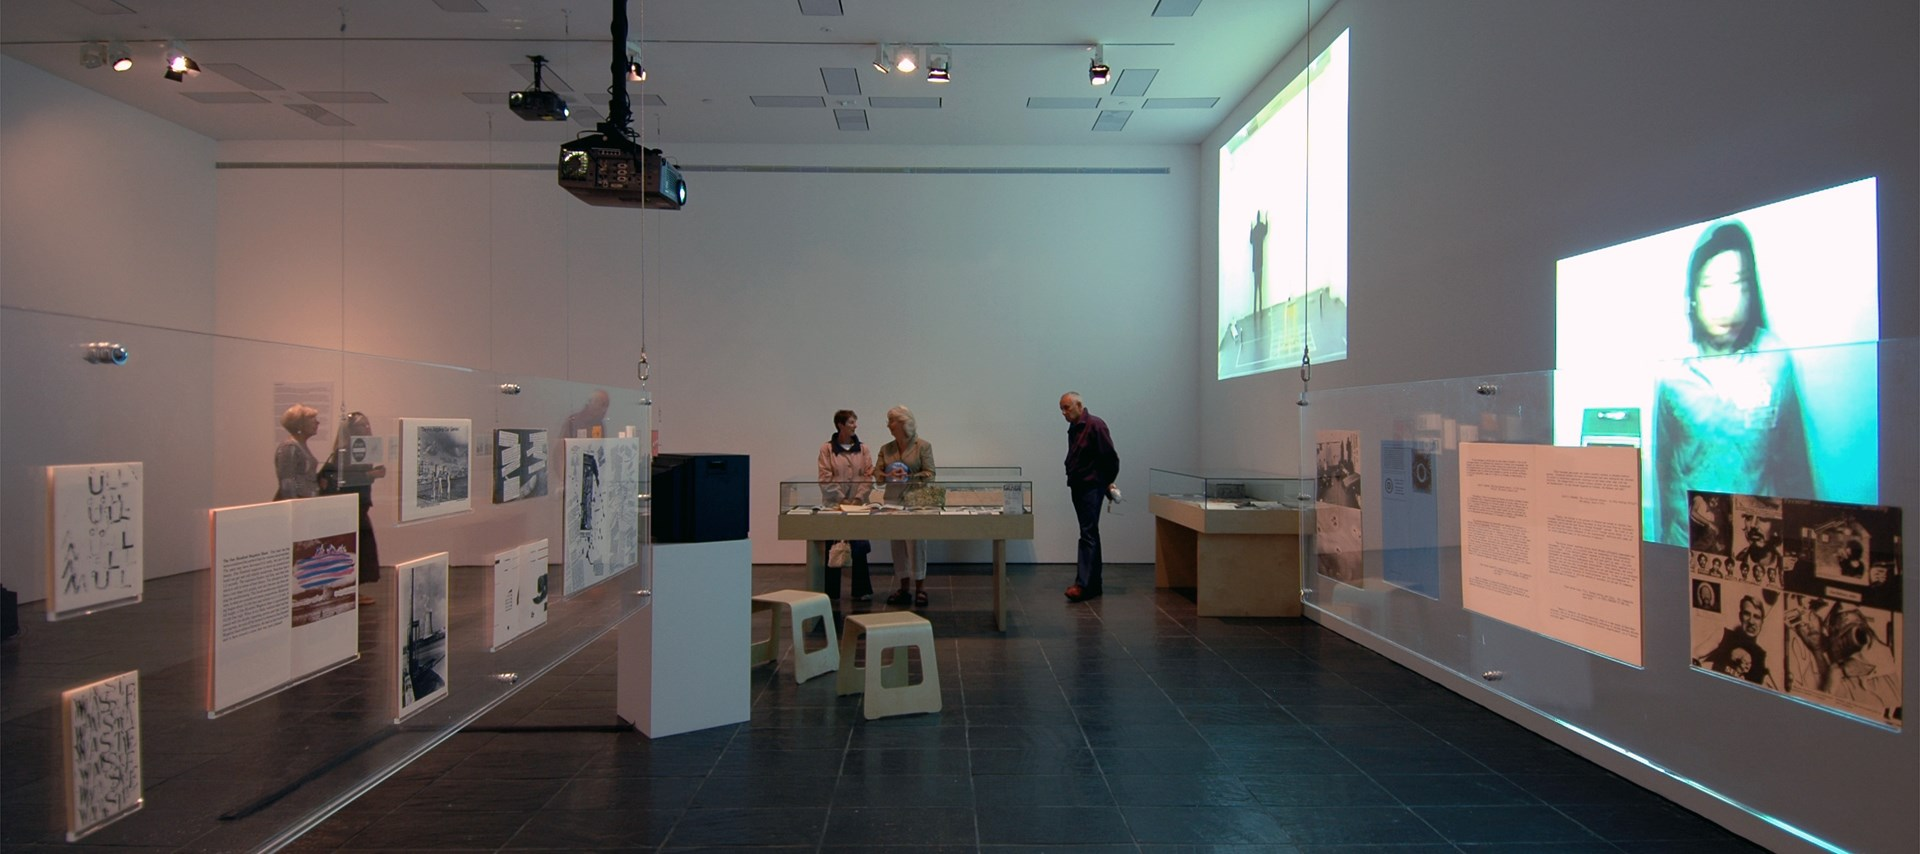 History of Disappearance exhibition at BALTIC: Installation shot (36)